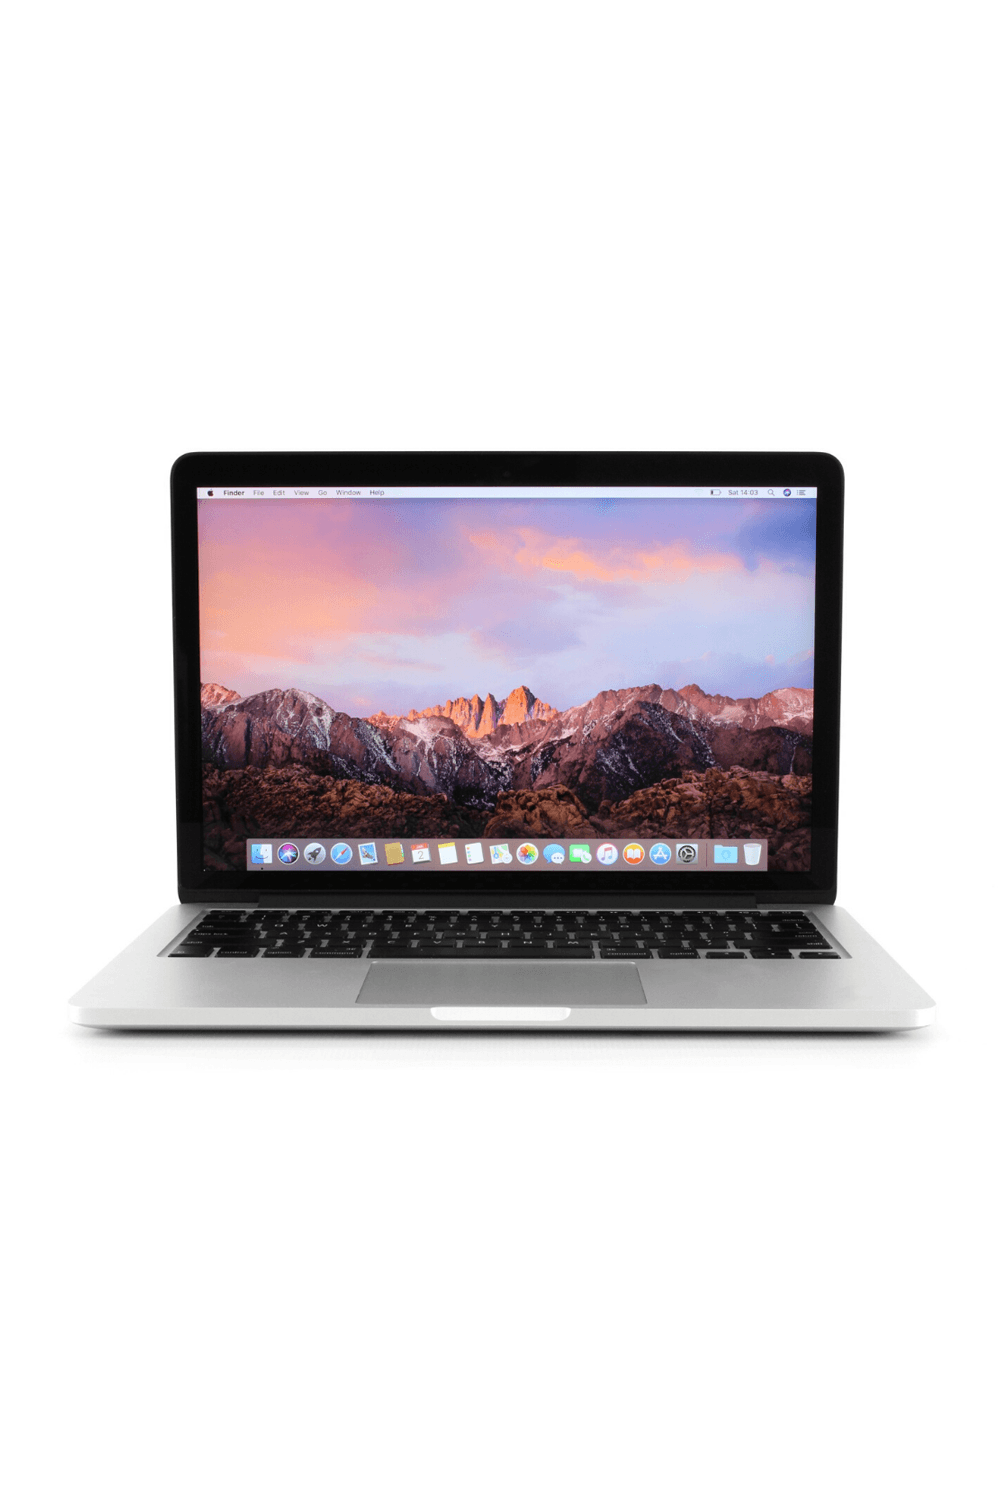 Renewed Apple MacBook Pro Retina A1398 15.4 inch 4th Gen-i7 | 16GB | 256 GB SSD | Mac OS Integrated Graphics | Silver - QuickTech.in